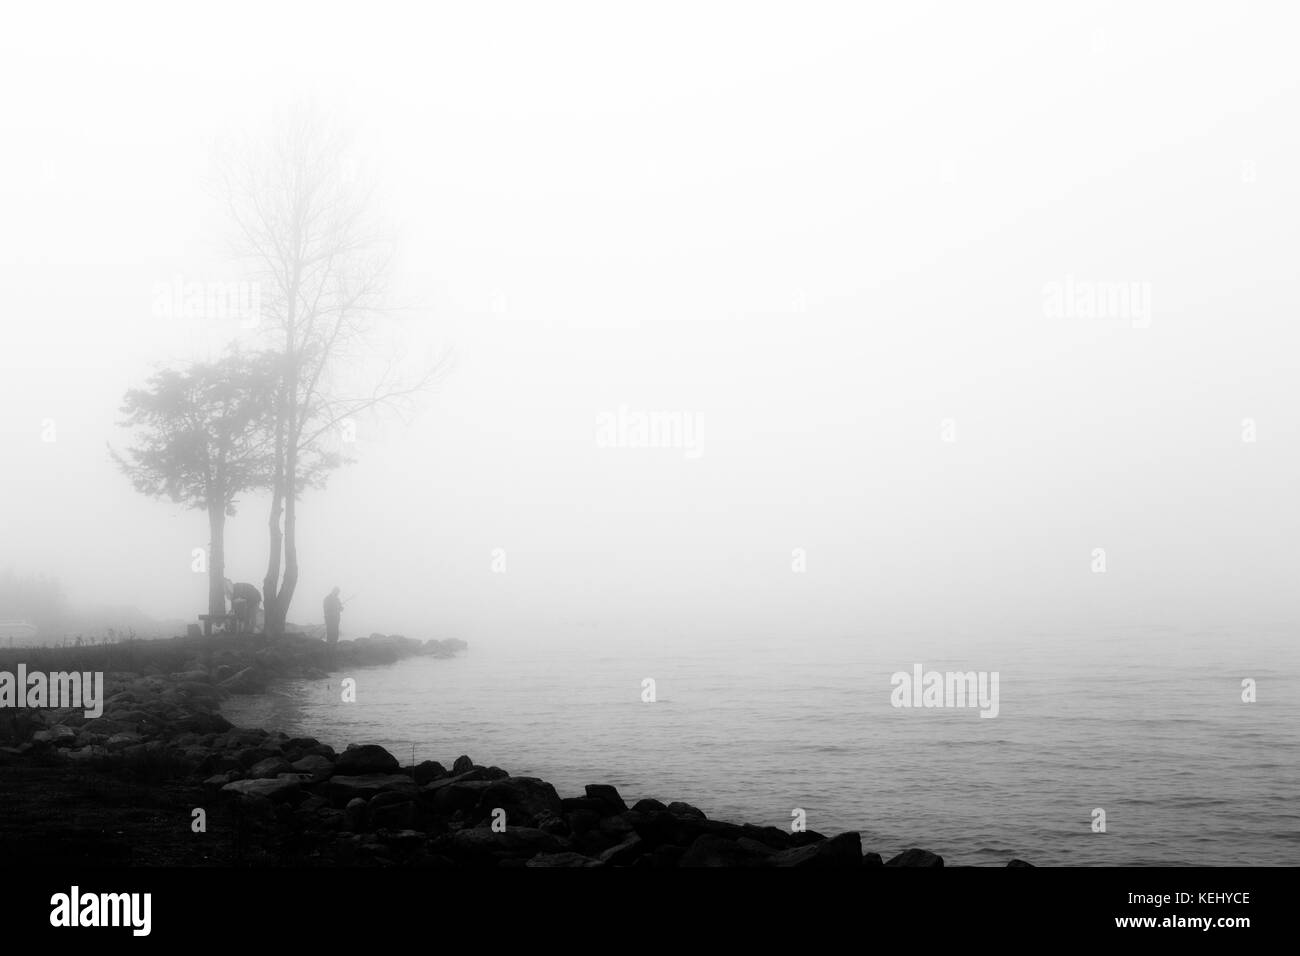 A lake hidden by fog, with rocks in the foreground and a fisherman and trees in the background - Stock Image